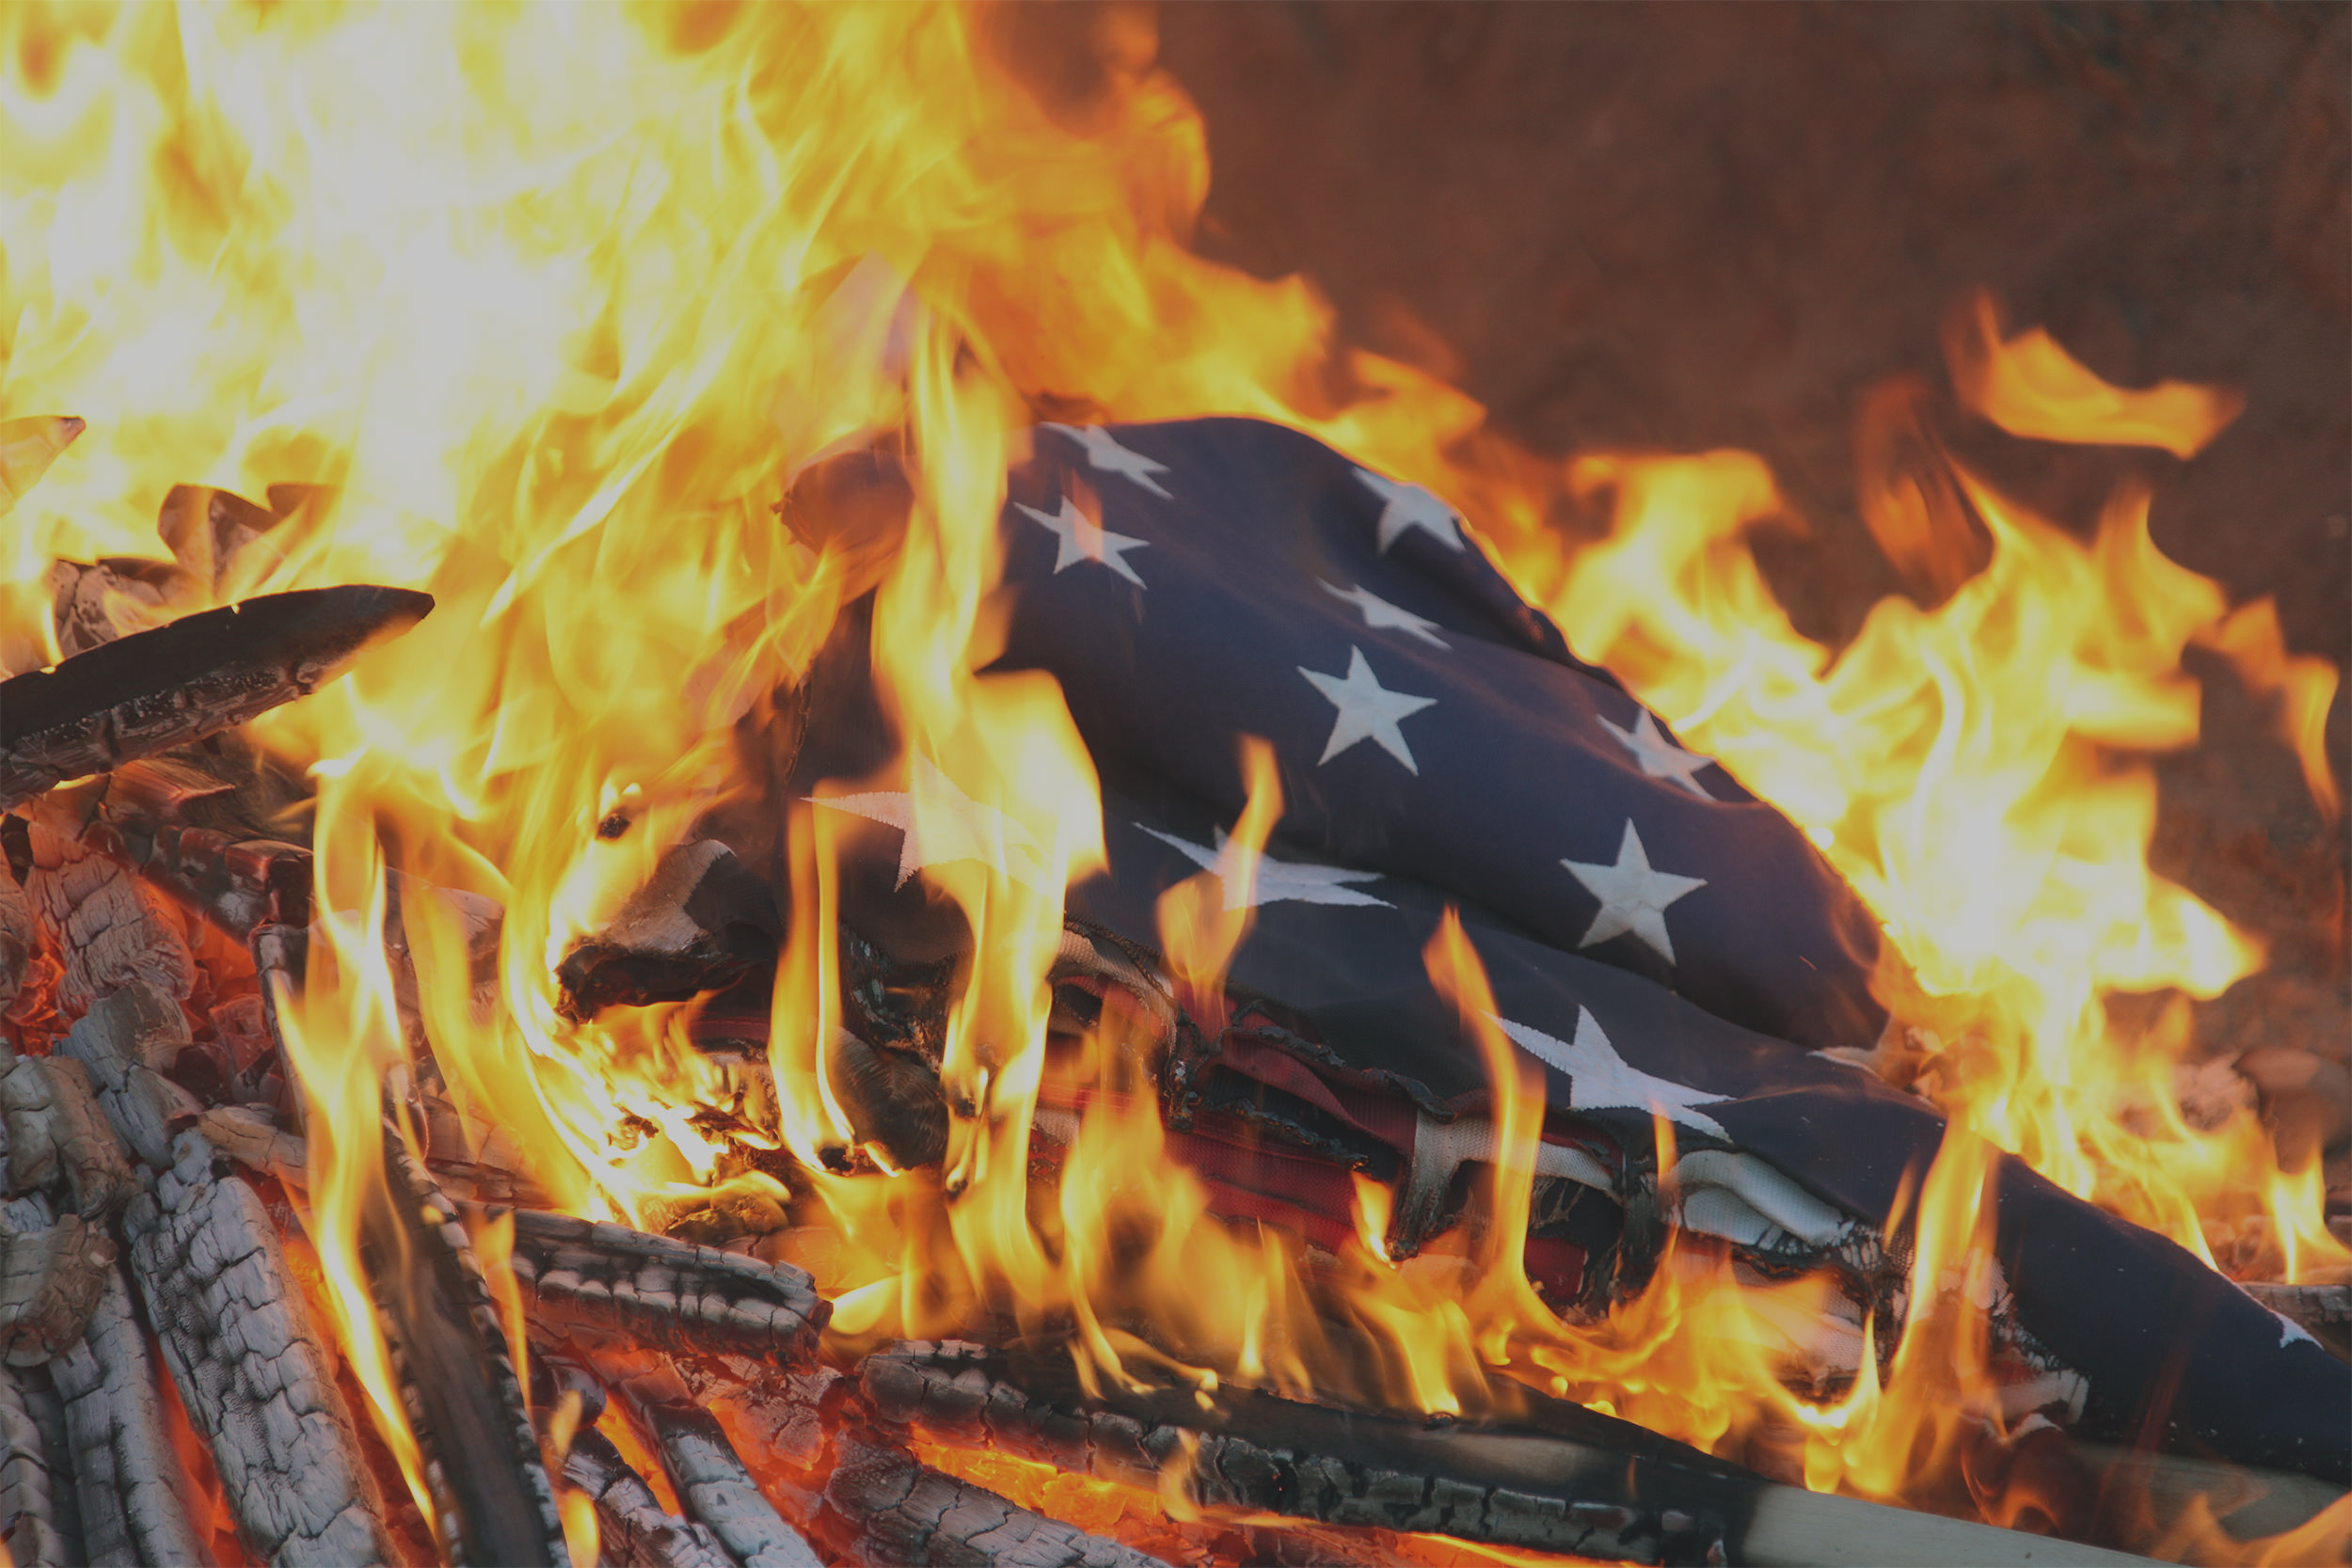 Burning Flag